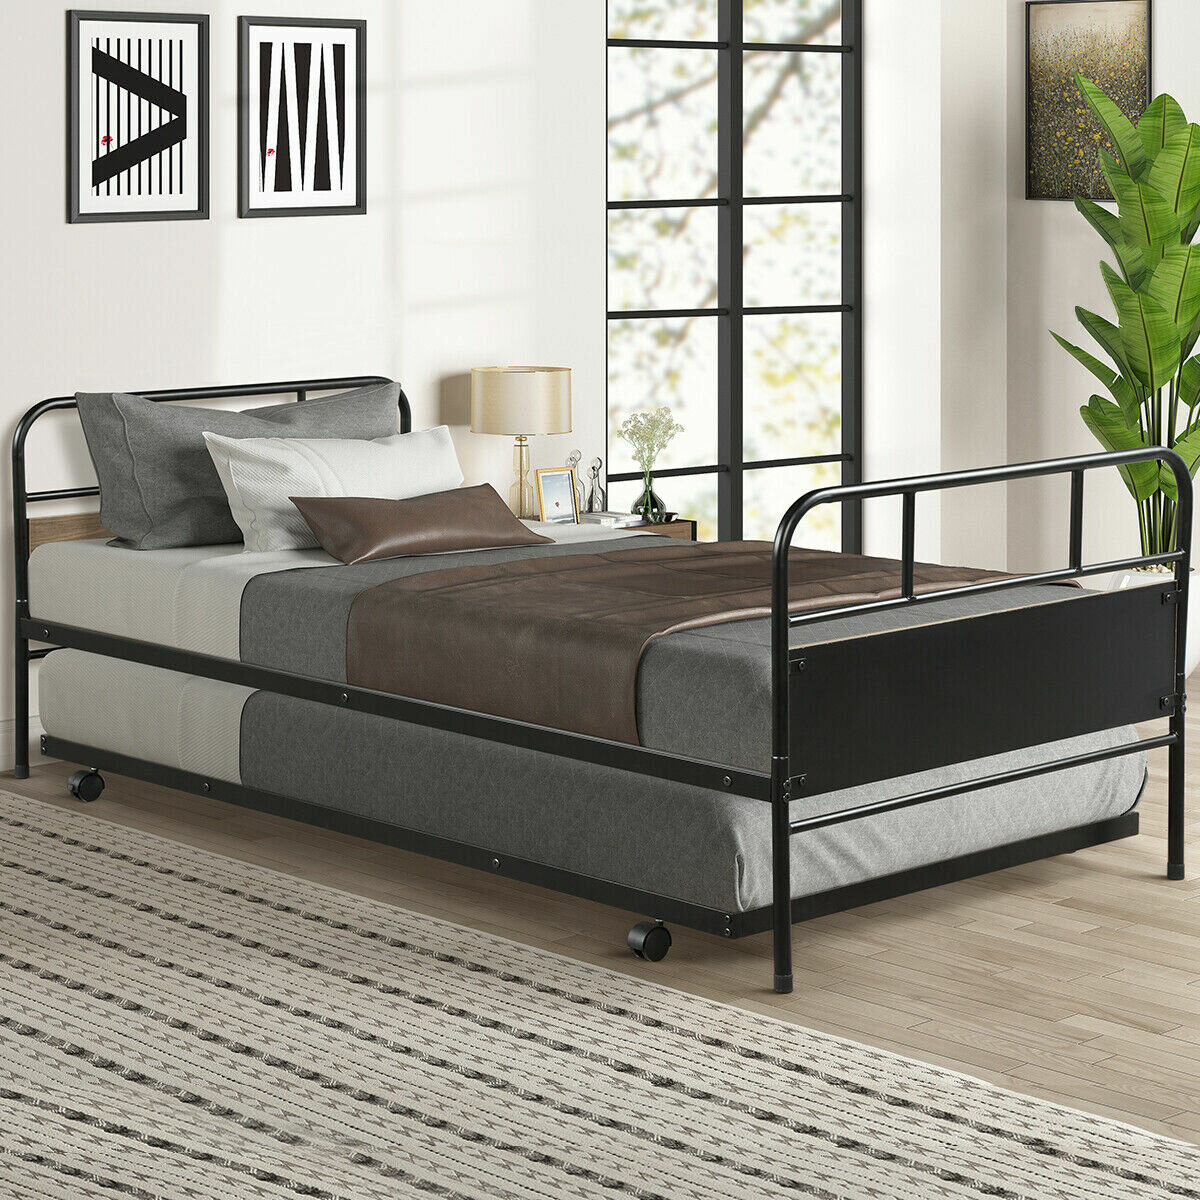 Picture of: Ebern Designs Vershire Twin Bed With Trundle Reviews